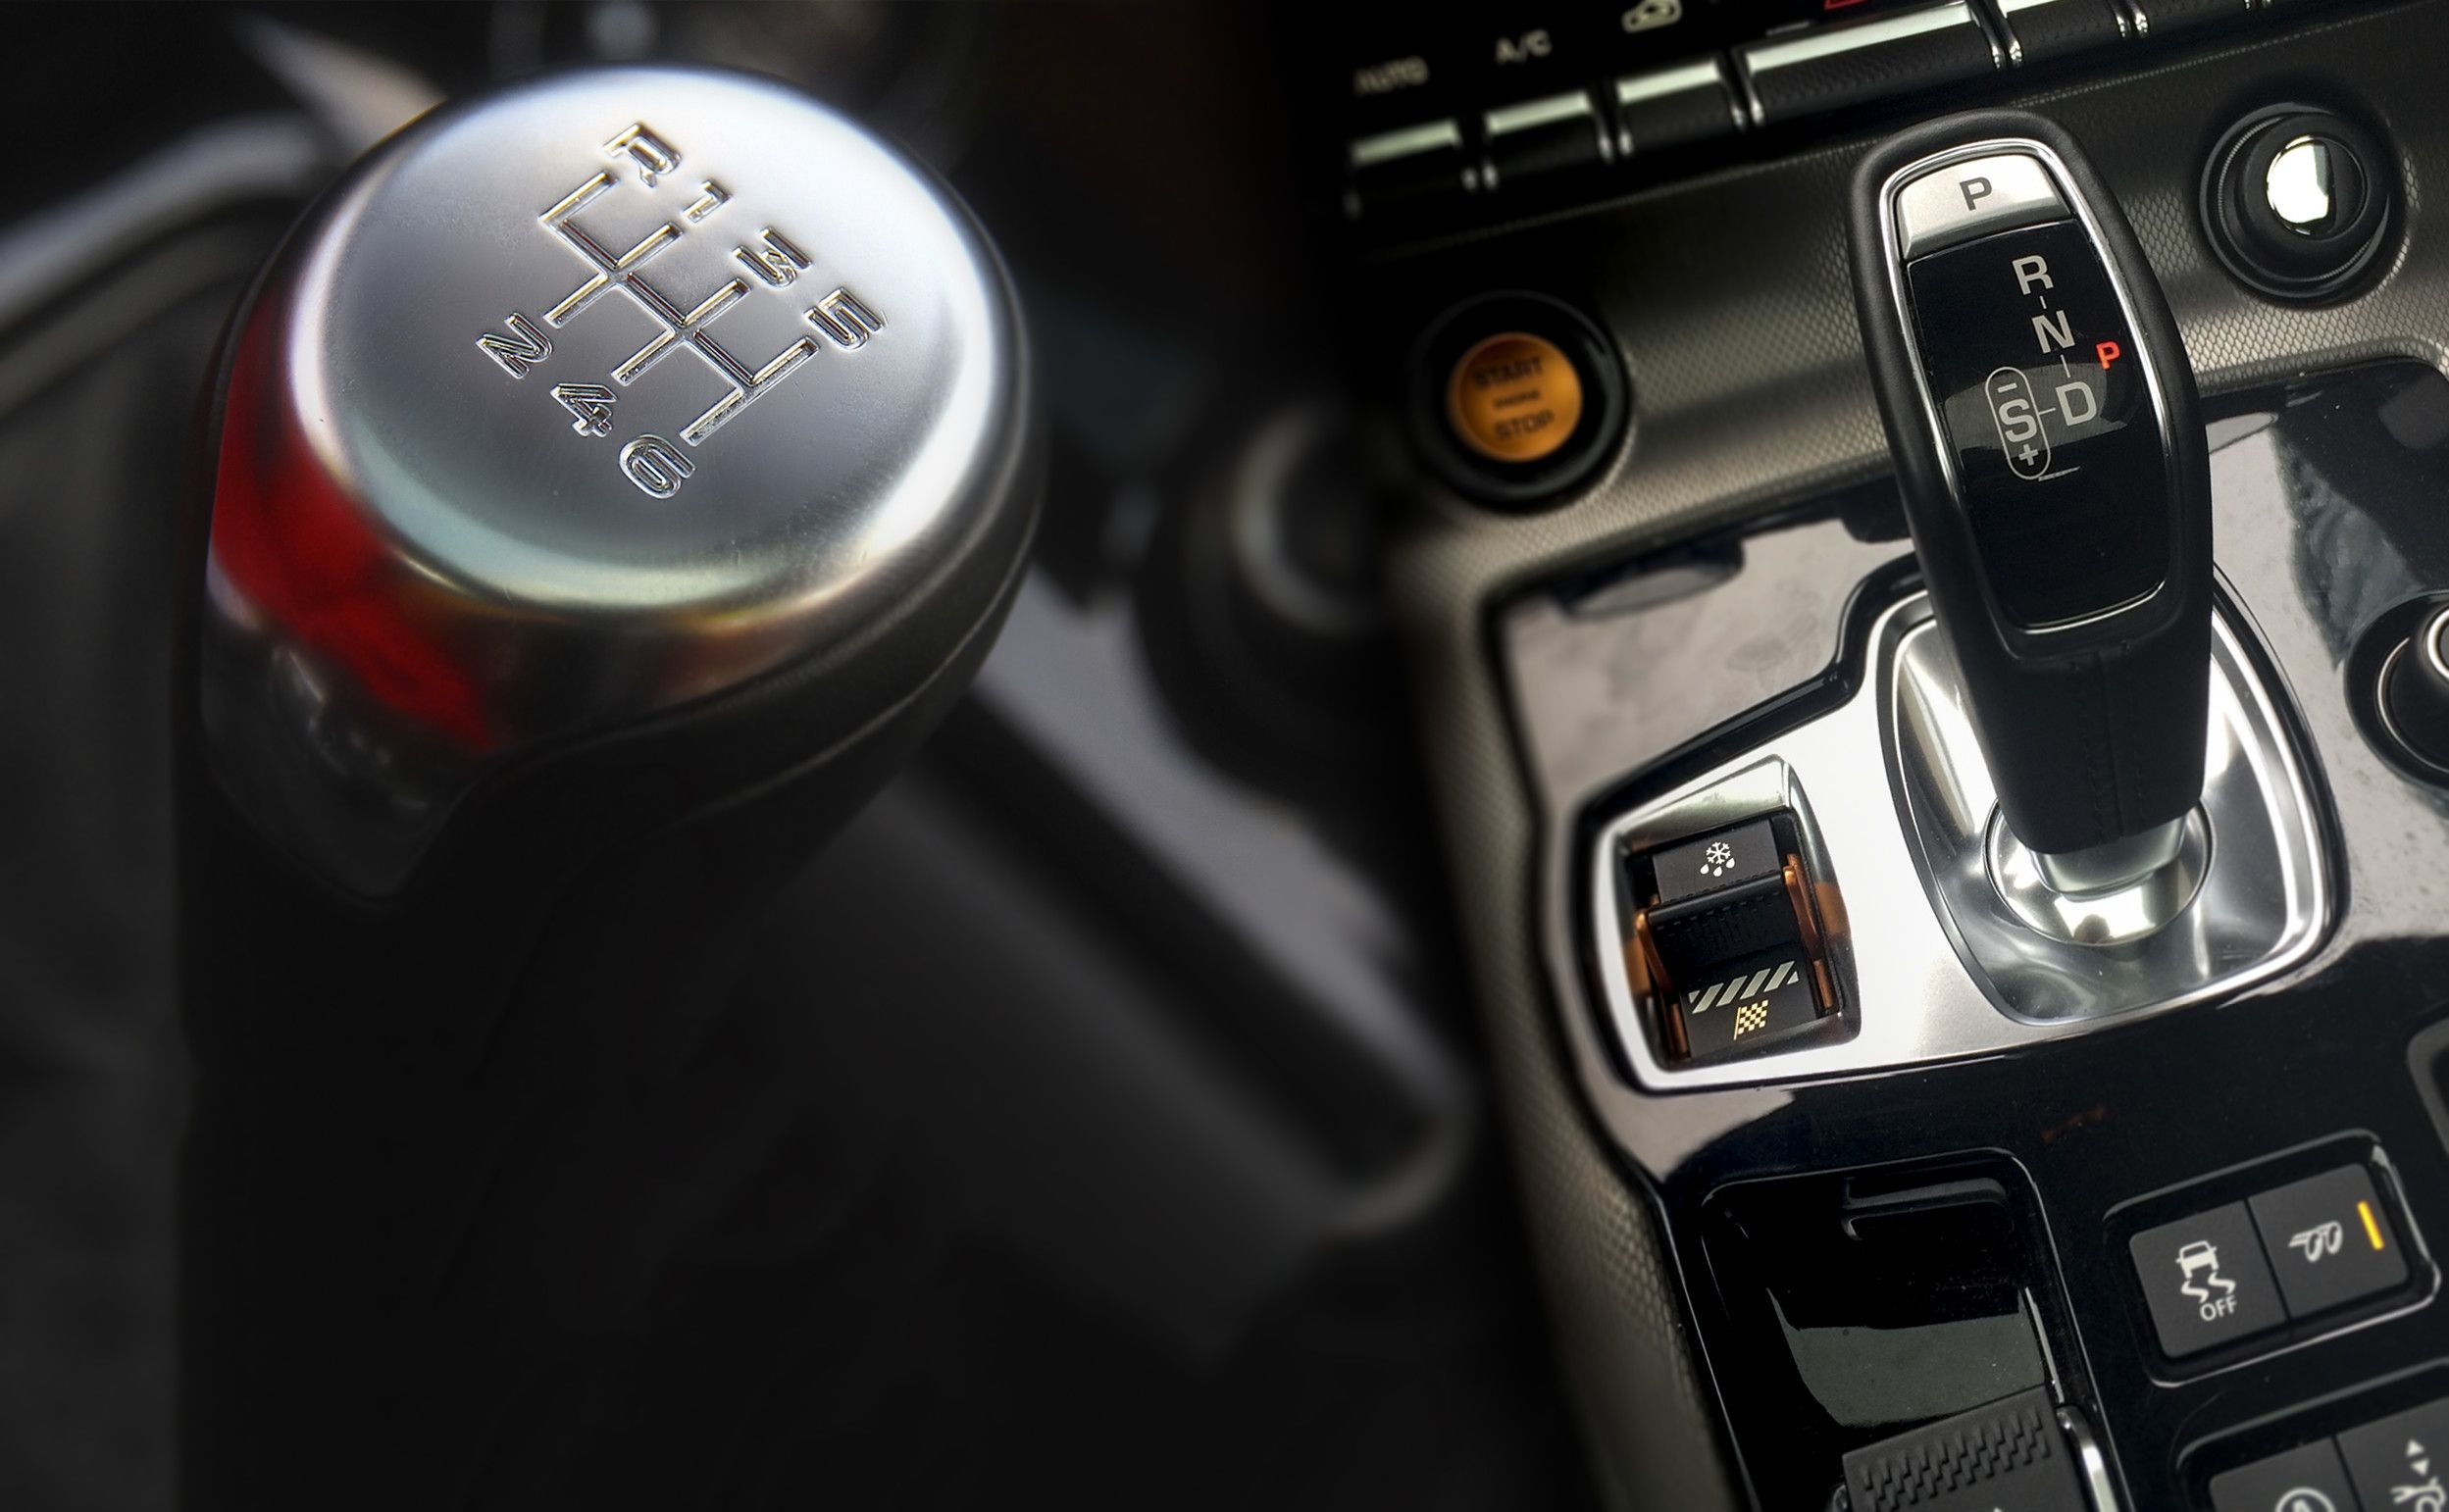 Automatic Car May Be Less Easy To Drive Especially On Manual Guide